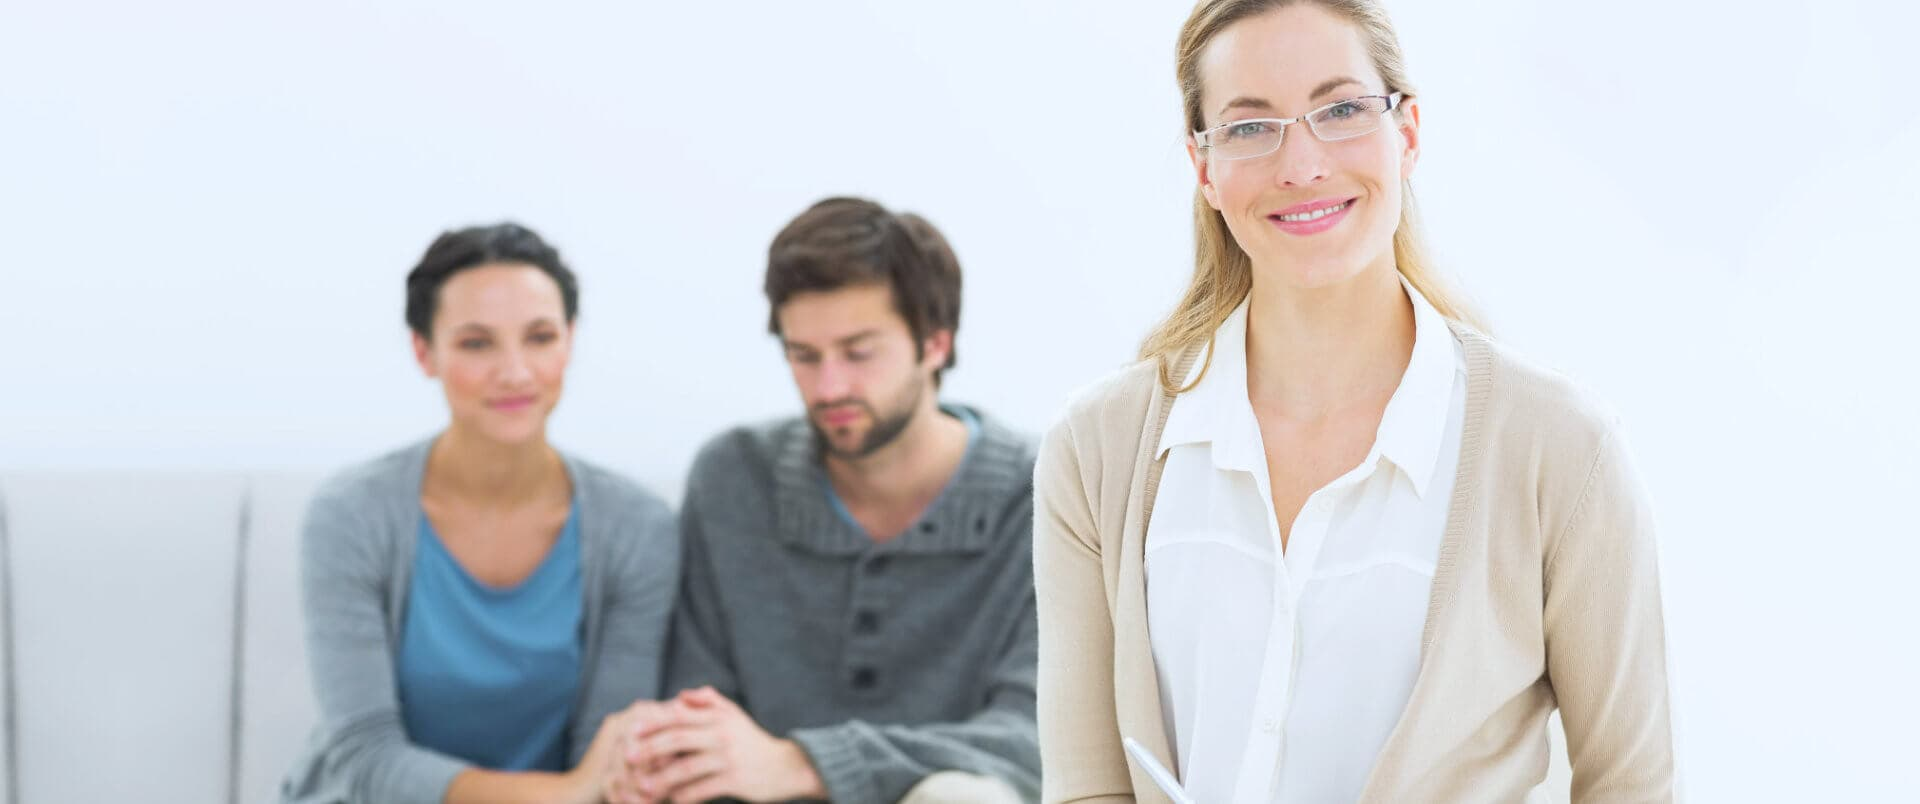 therapist smiling with couple at the backgroun